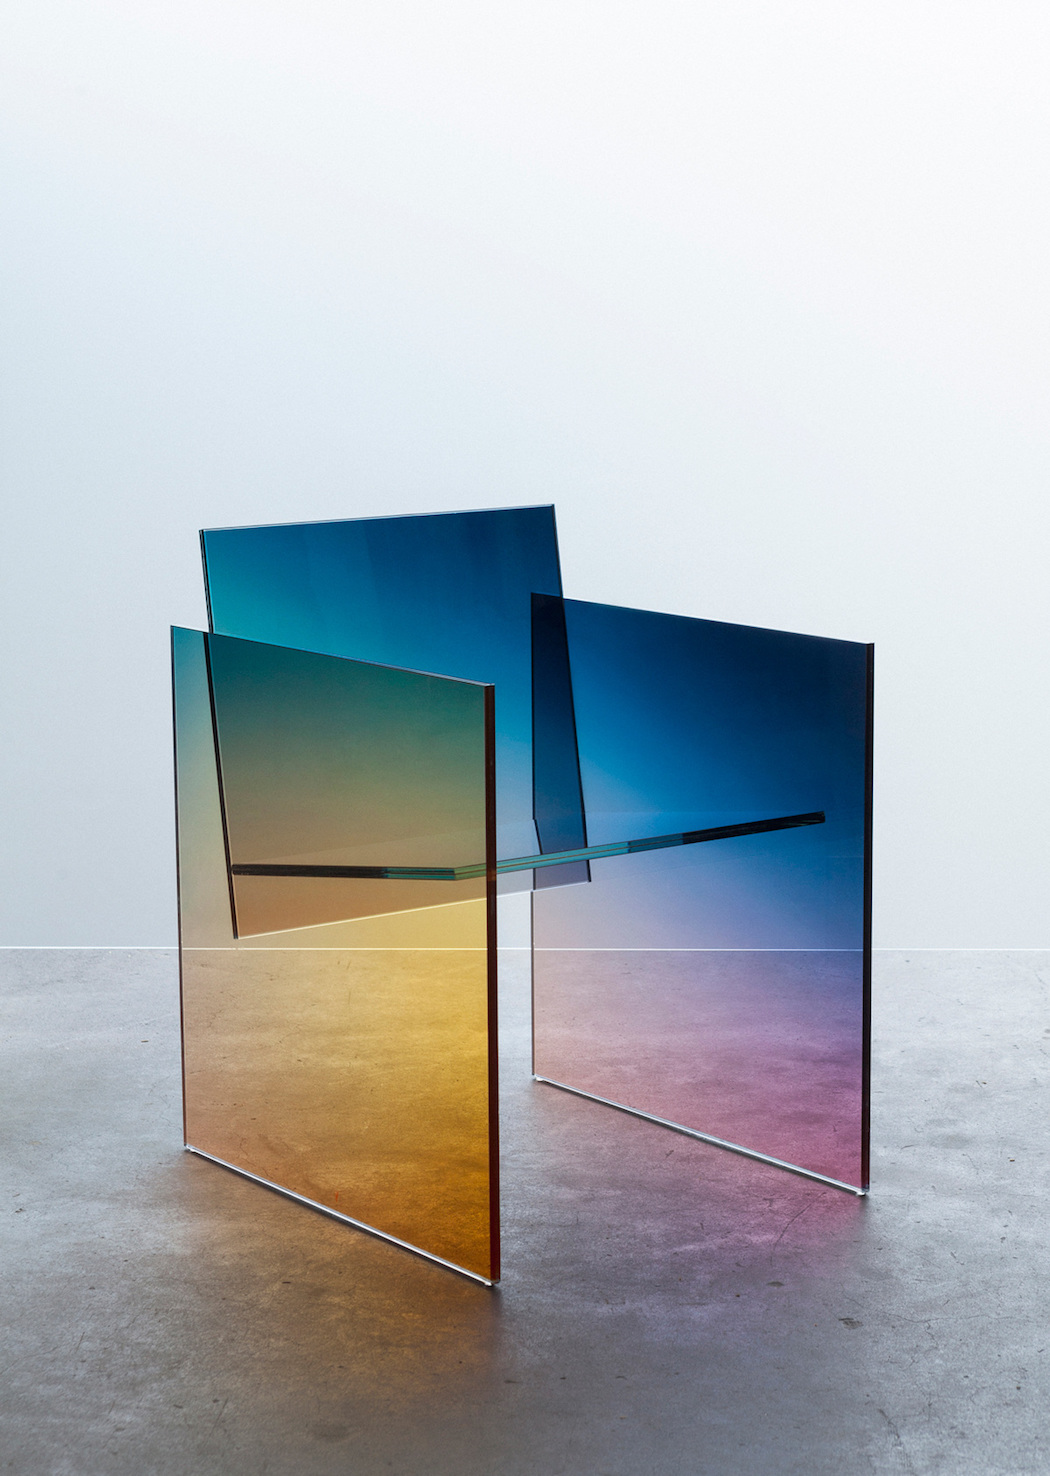 Colored Glass Chair by Germans Ermics – Fubiz Media Design